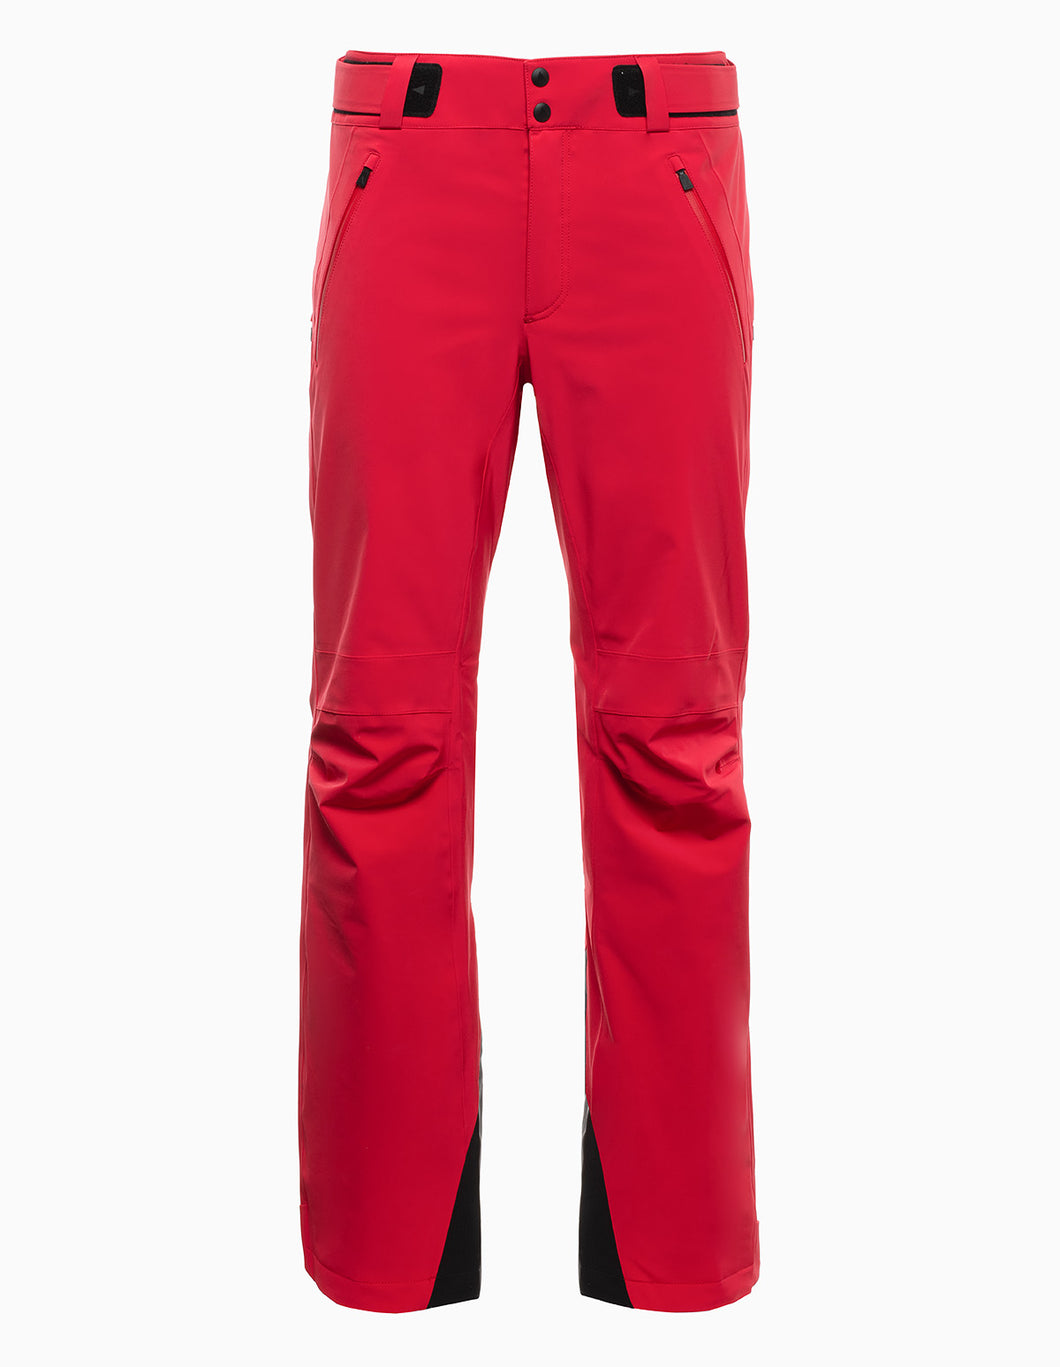 men Team Aztech pants - Red